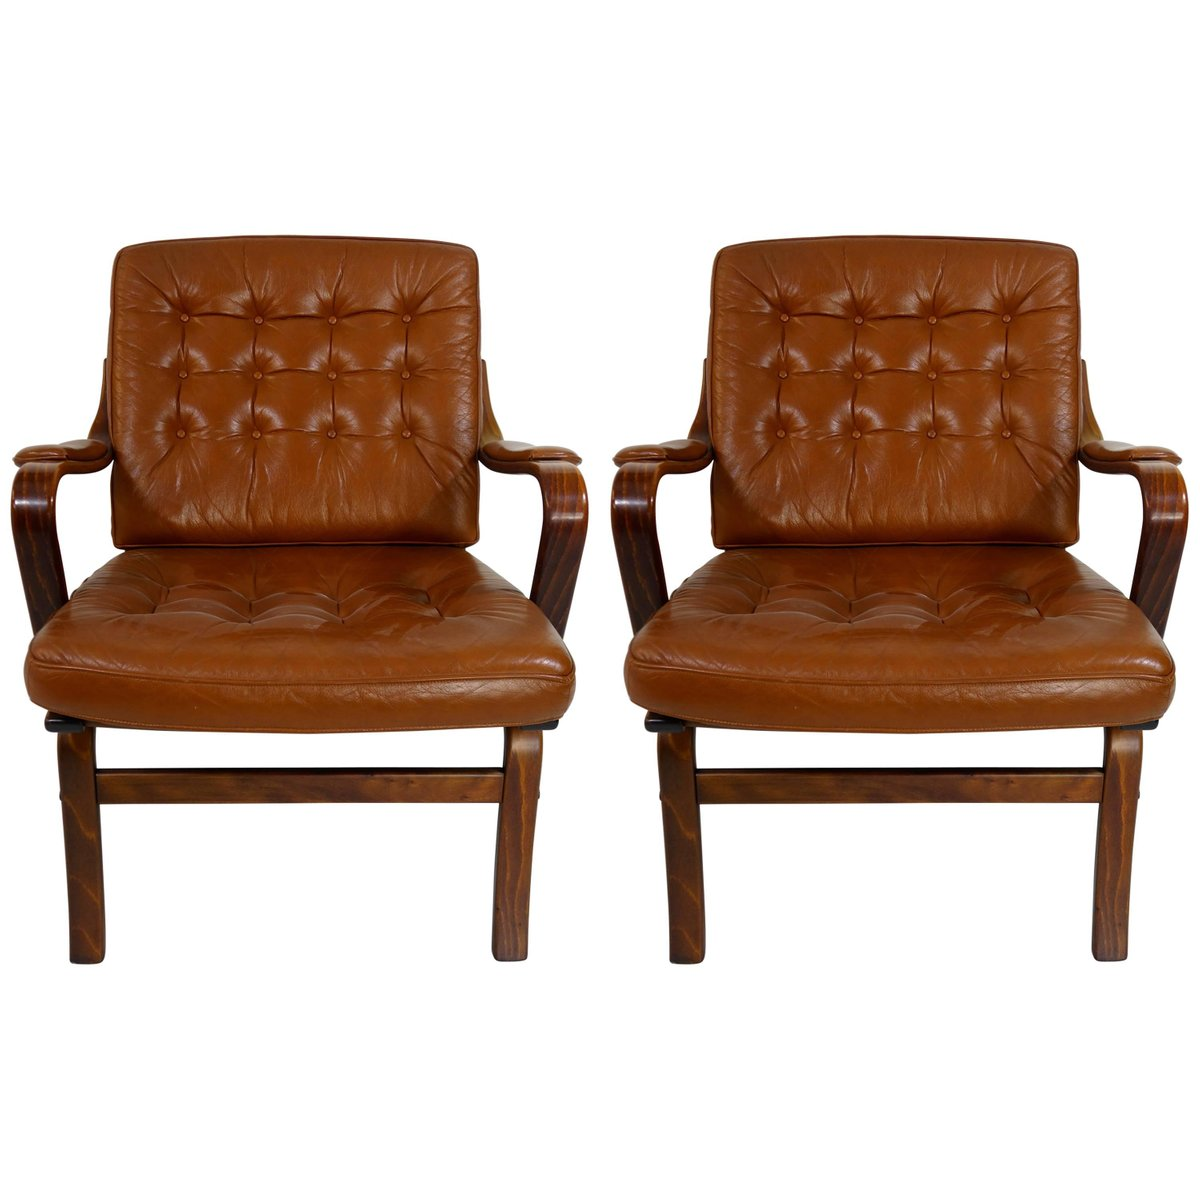 Modern Leather Chairs Mid Century Modern Rosewood Leather Armchairs From Göte Möbel Set Of 2